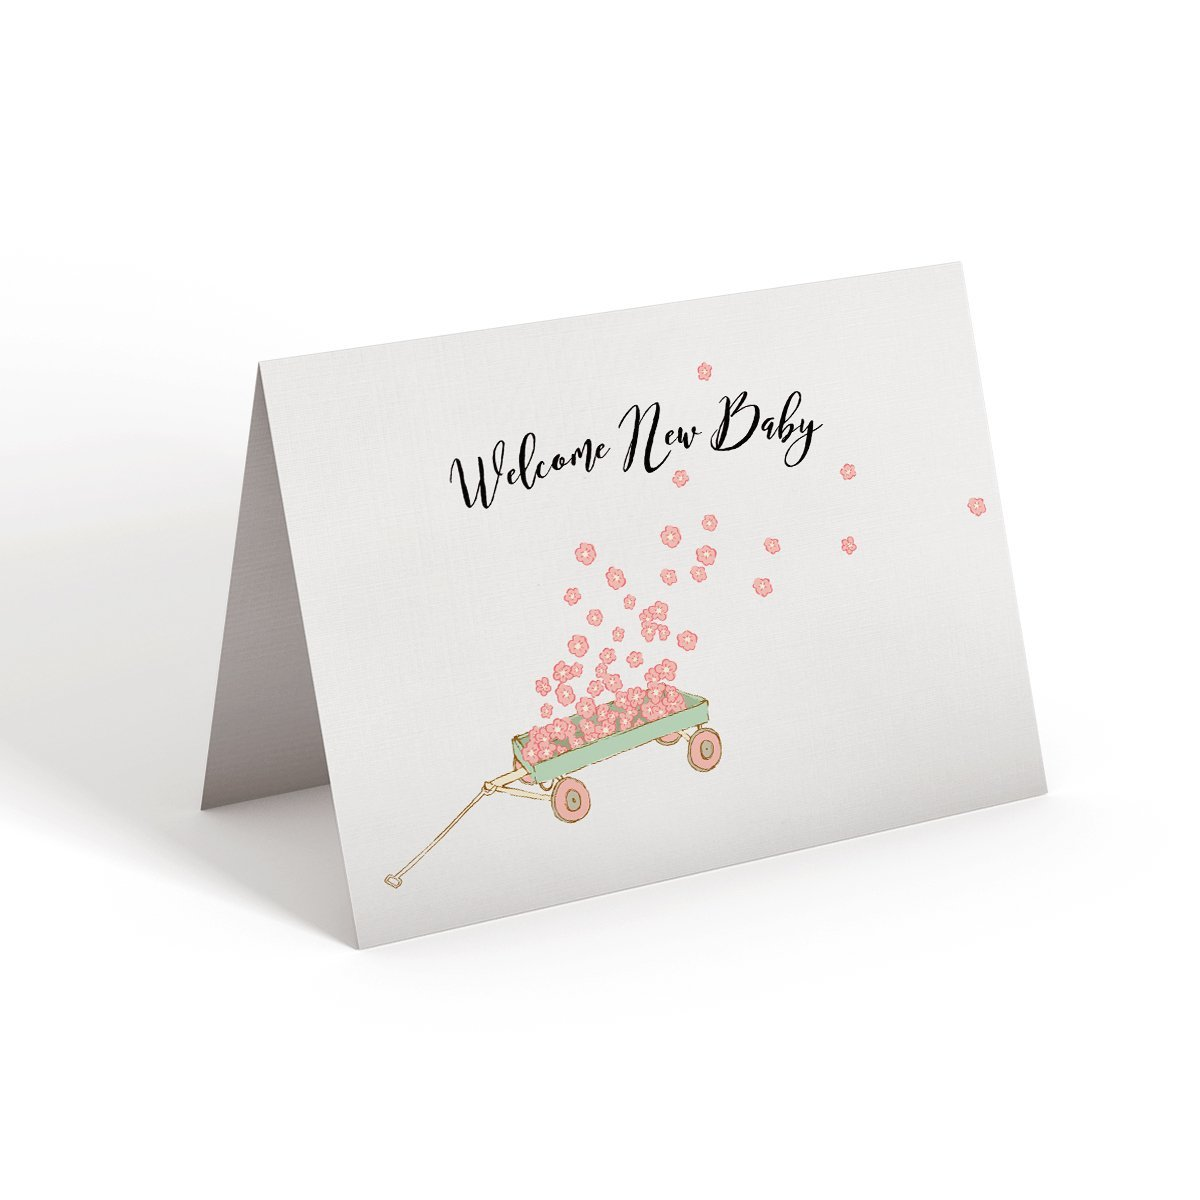 Welcome New Baby - Greeting Card - Netties Expressions